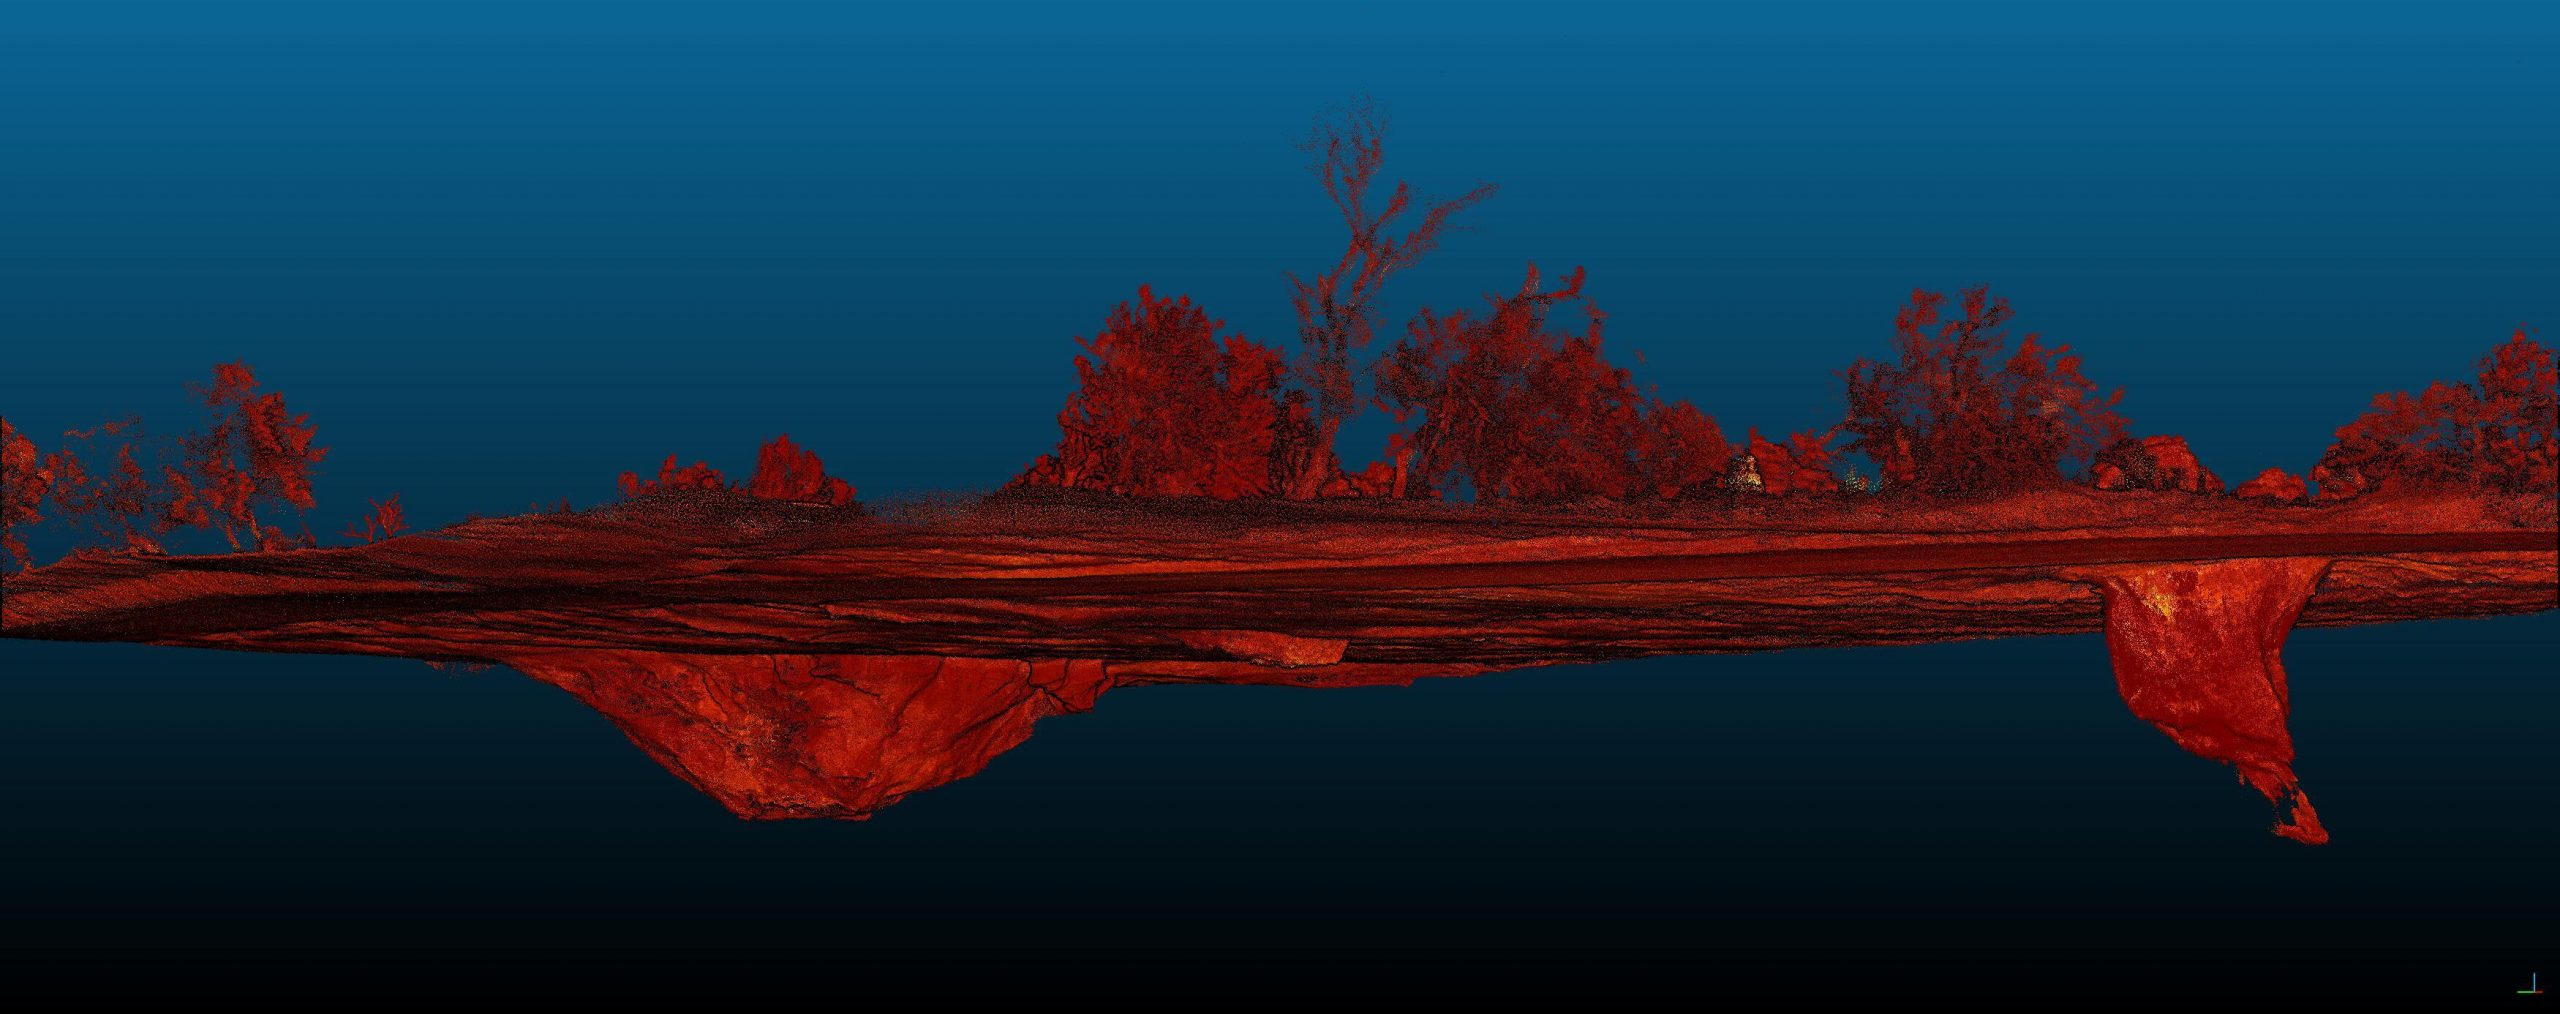 MineLiDAR technology and services in action, landscape scana above and below the ground in 3D